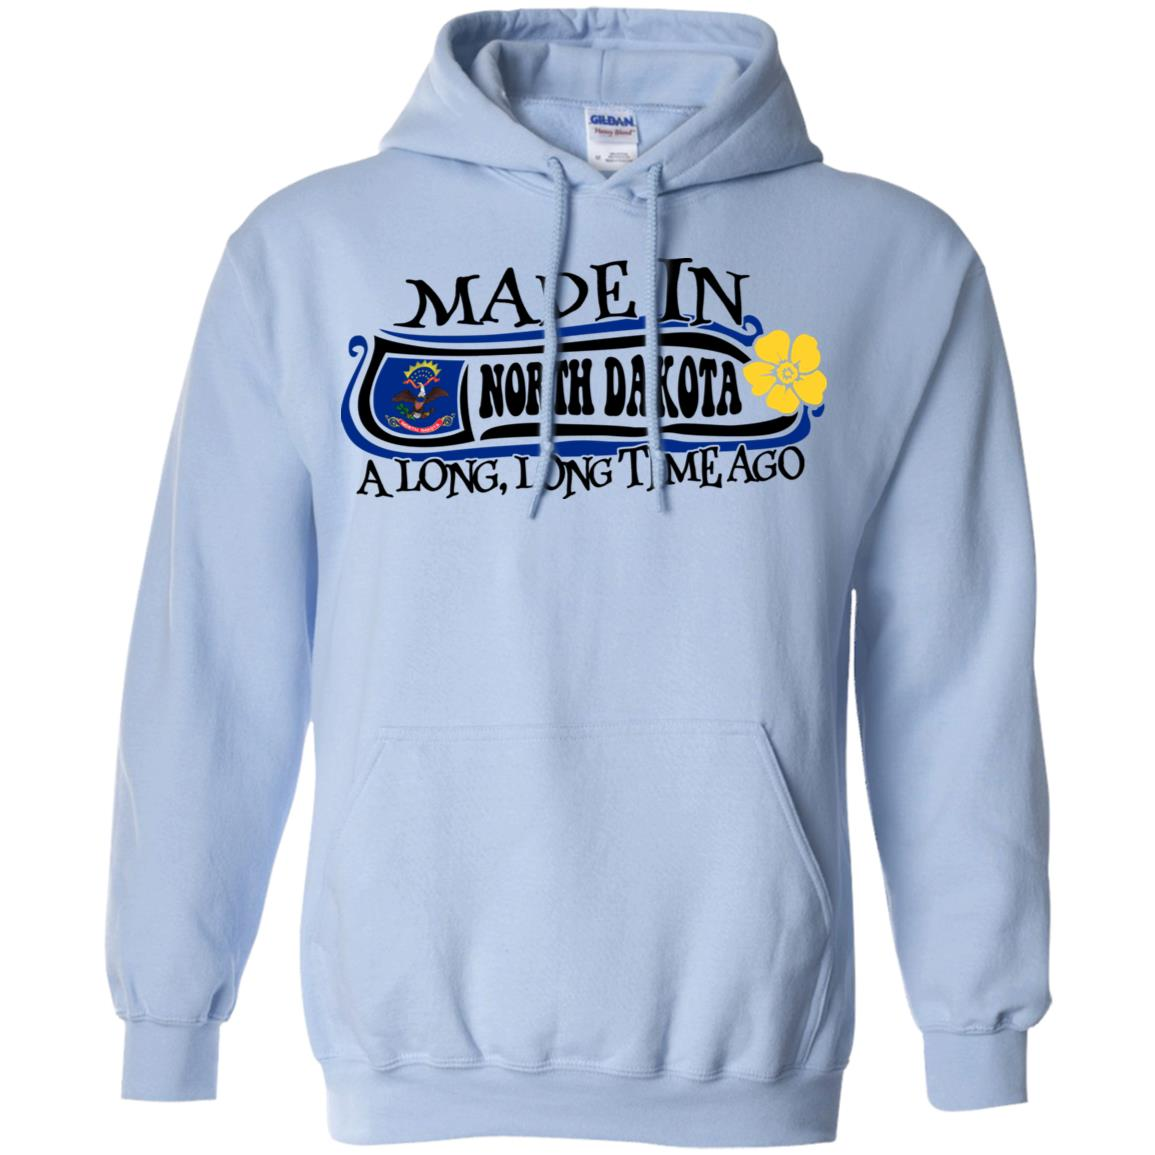 Made In North Dakota A Long Time Ago T-Shirt